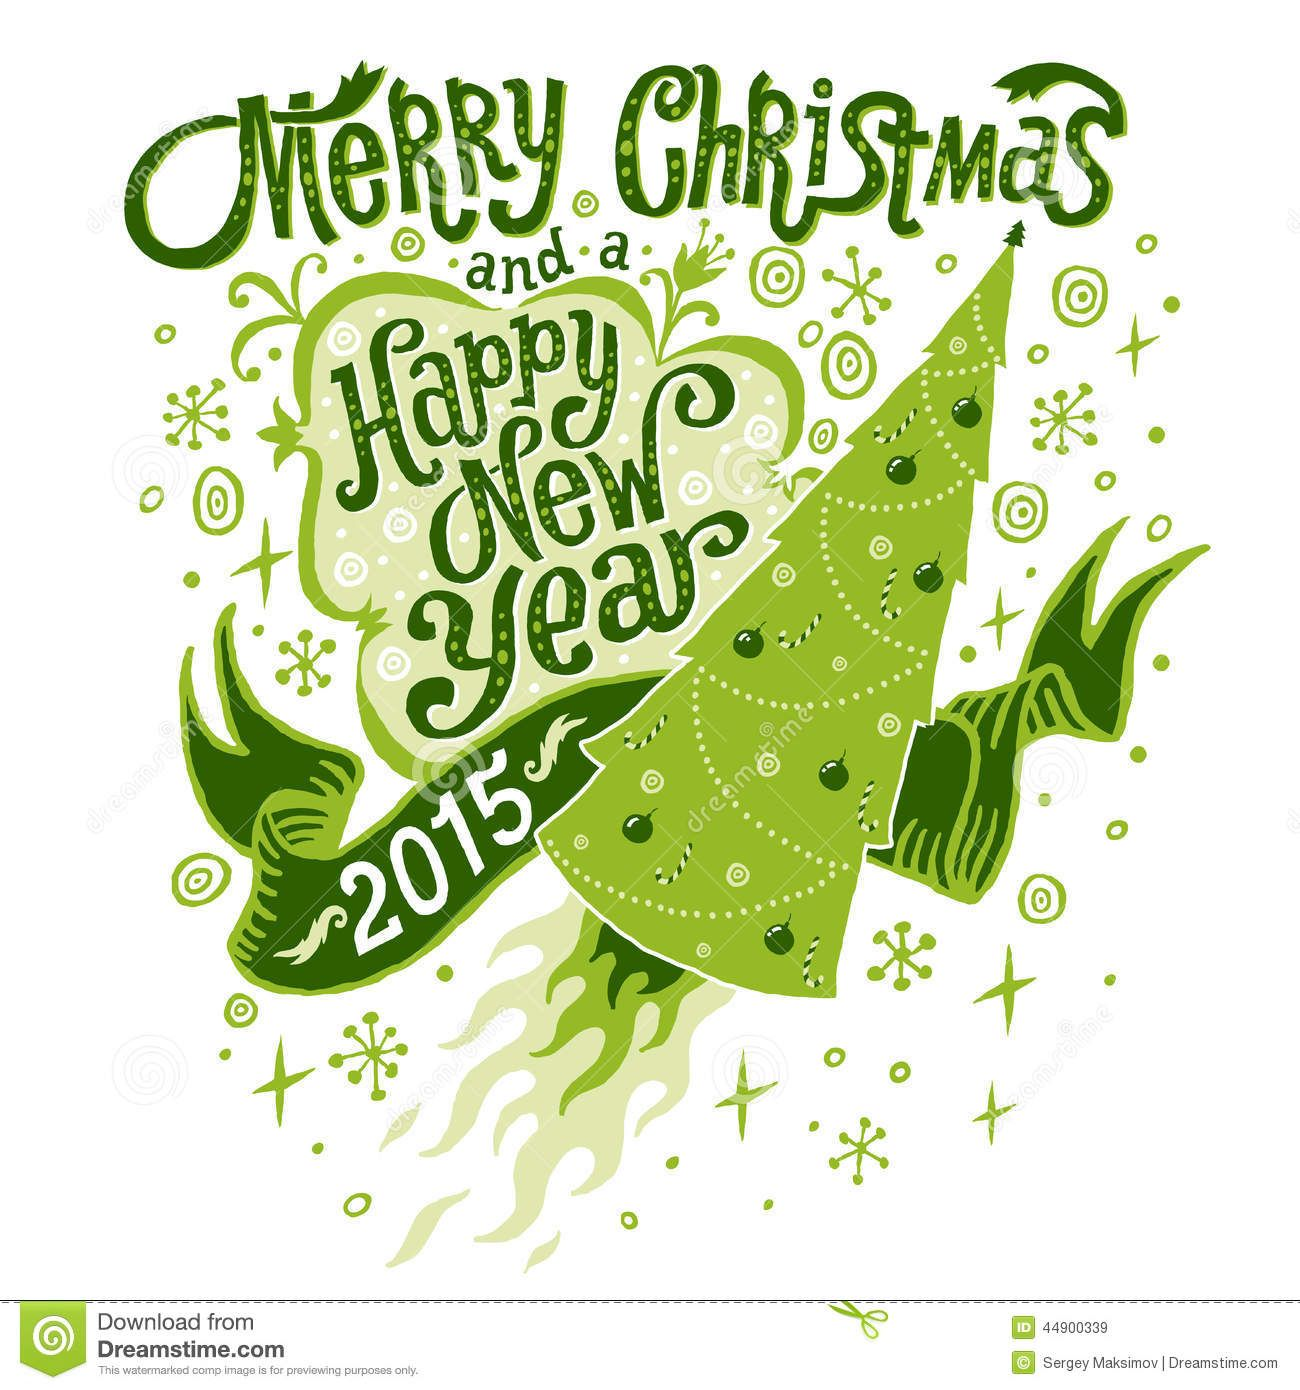 Merry christmas and happy new year 2015 greeting card with merry christmas and happy new year 2015 greeting card with handlettering typography download from over m4hsunfo